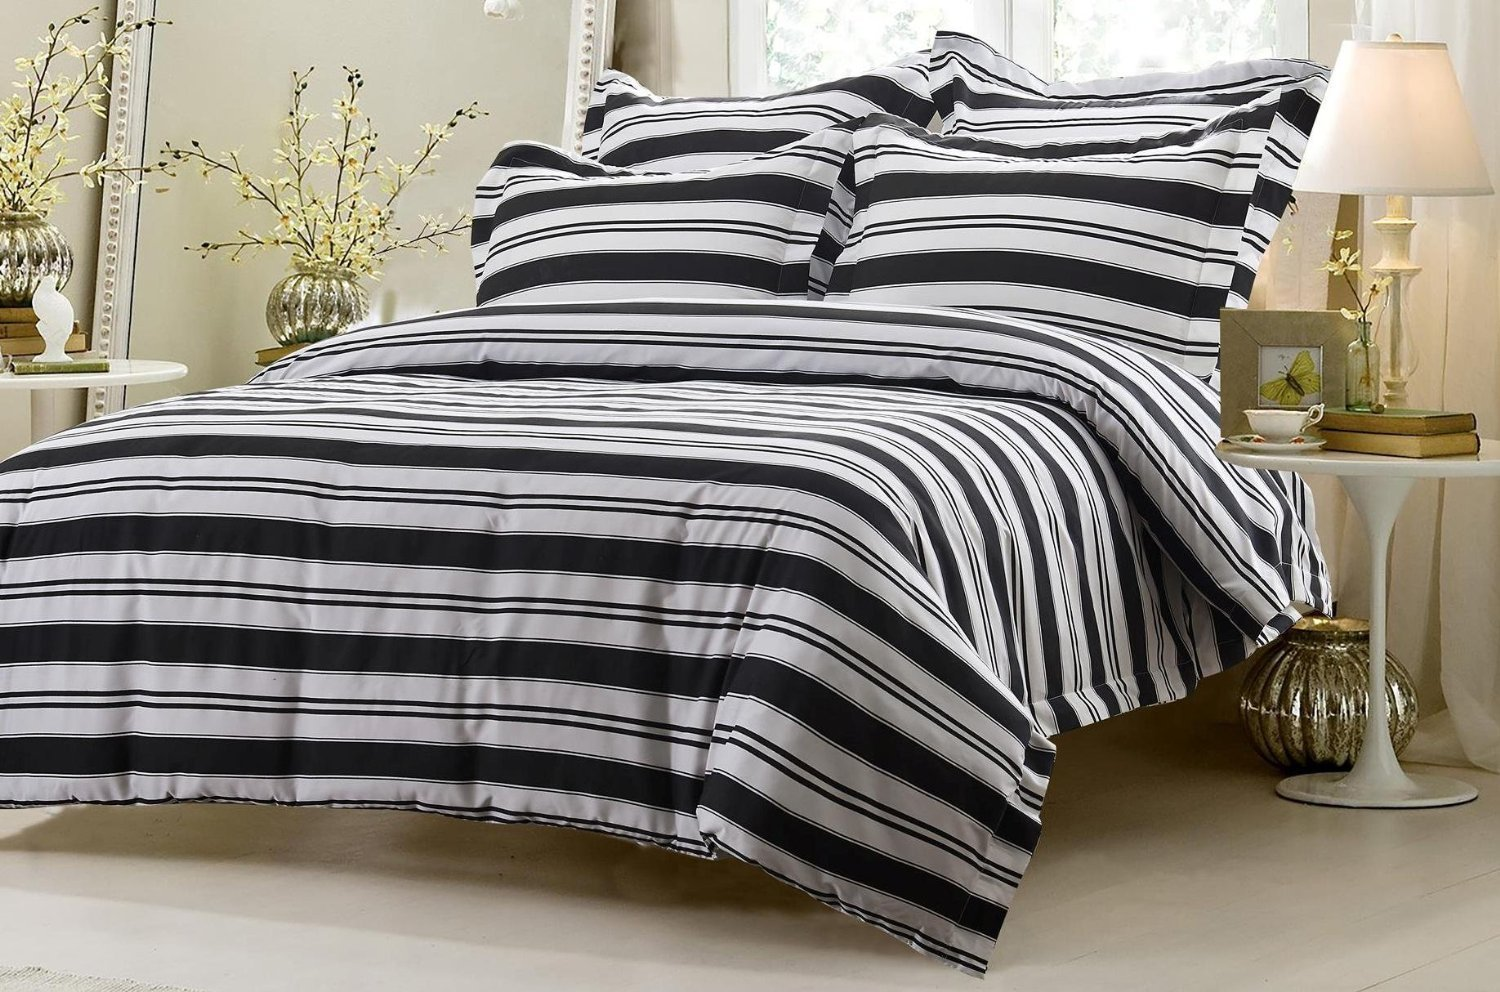 6pc Black and White Striped Bedding Set